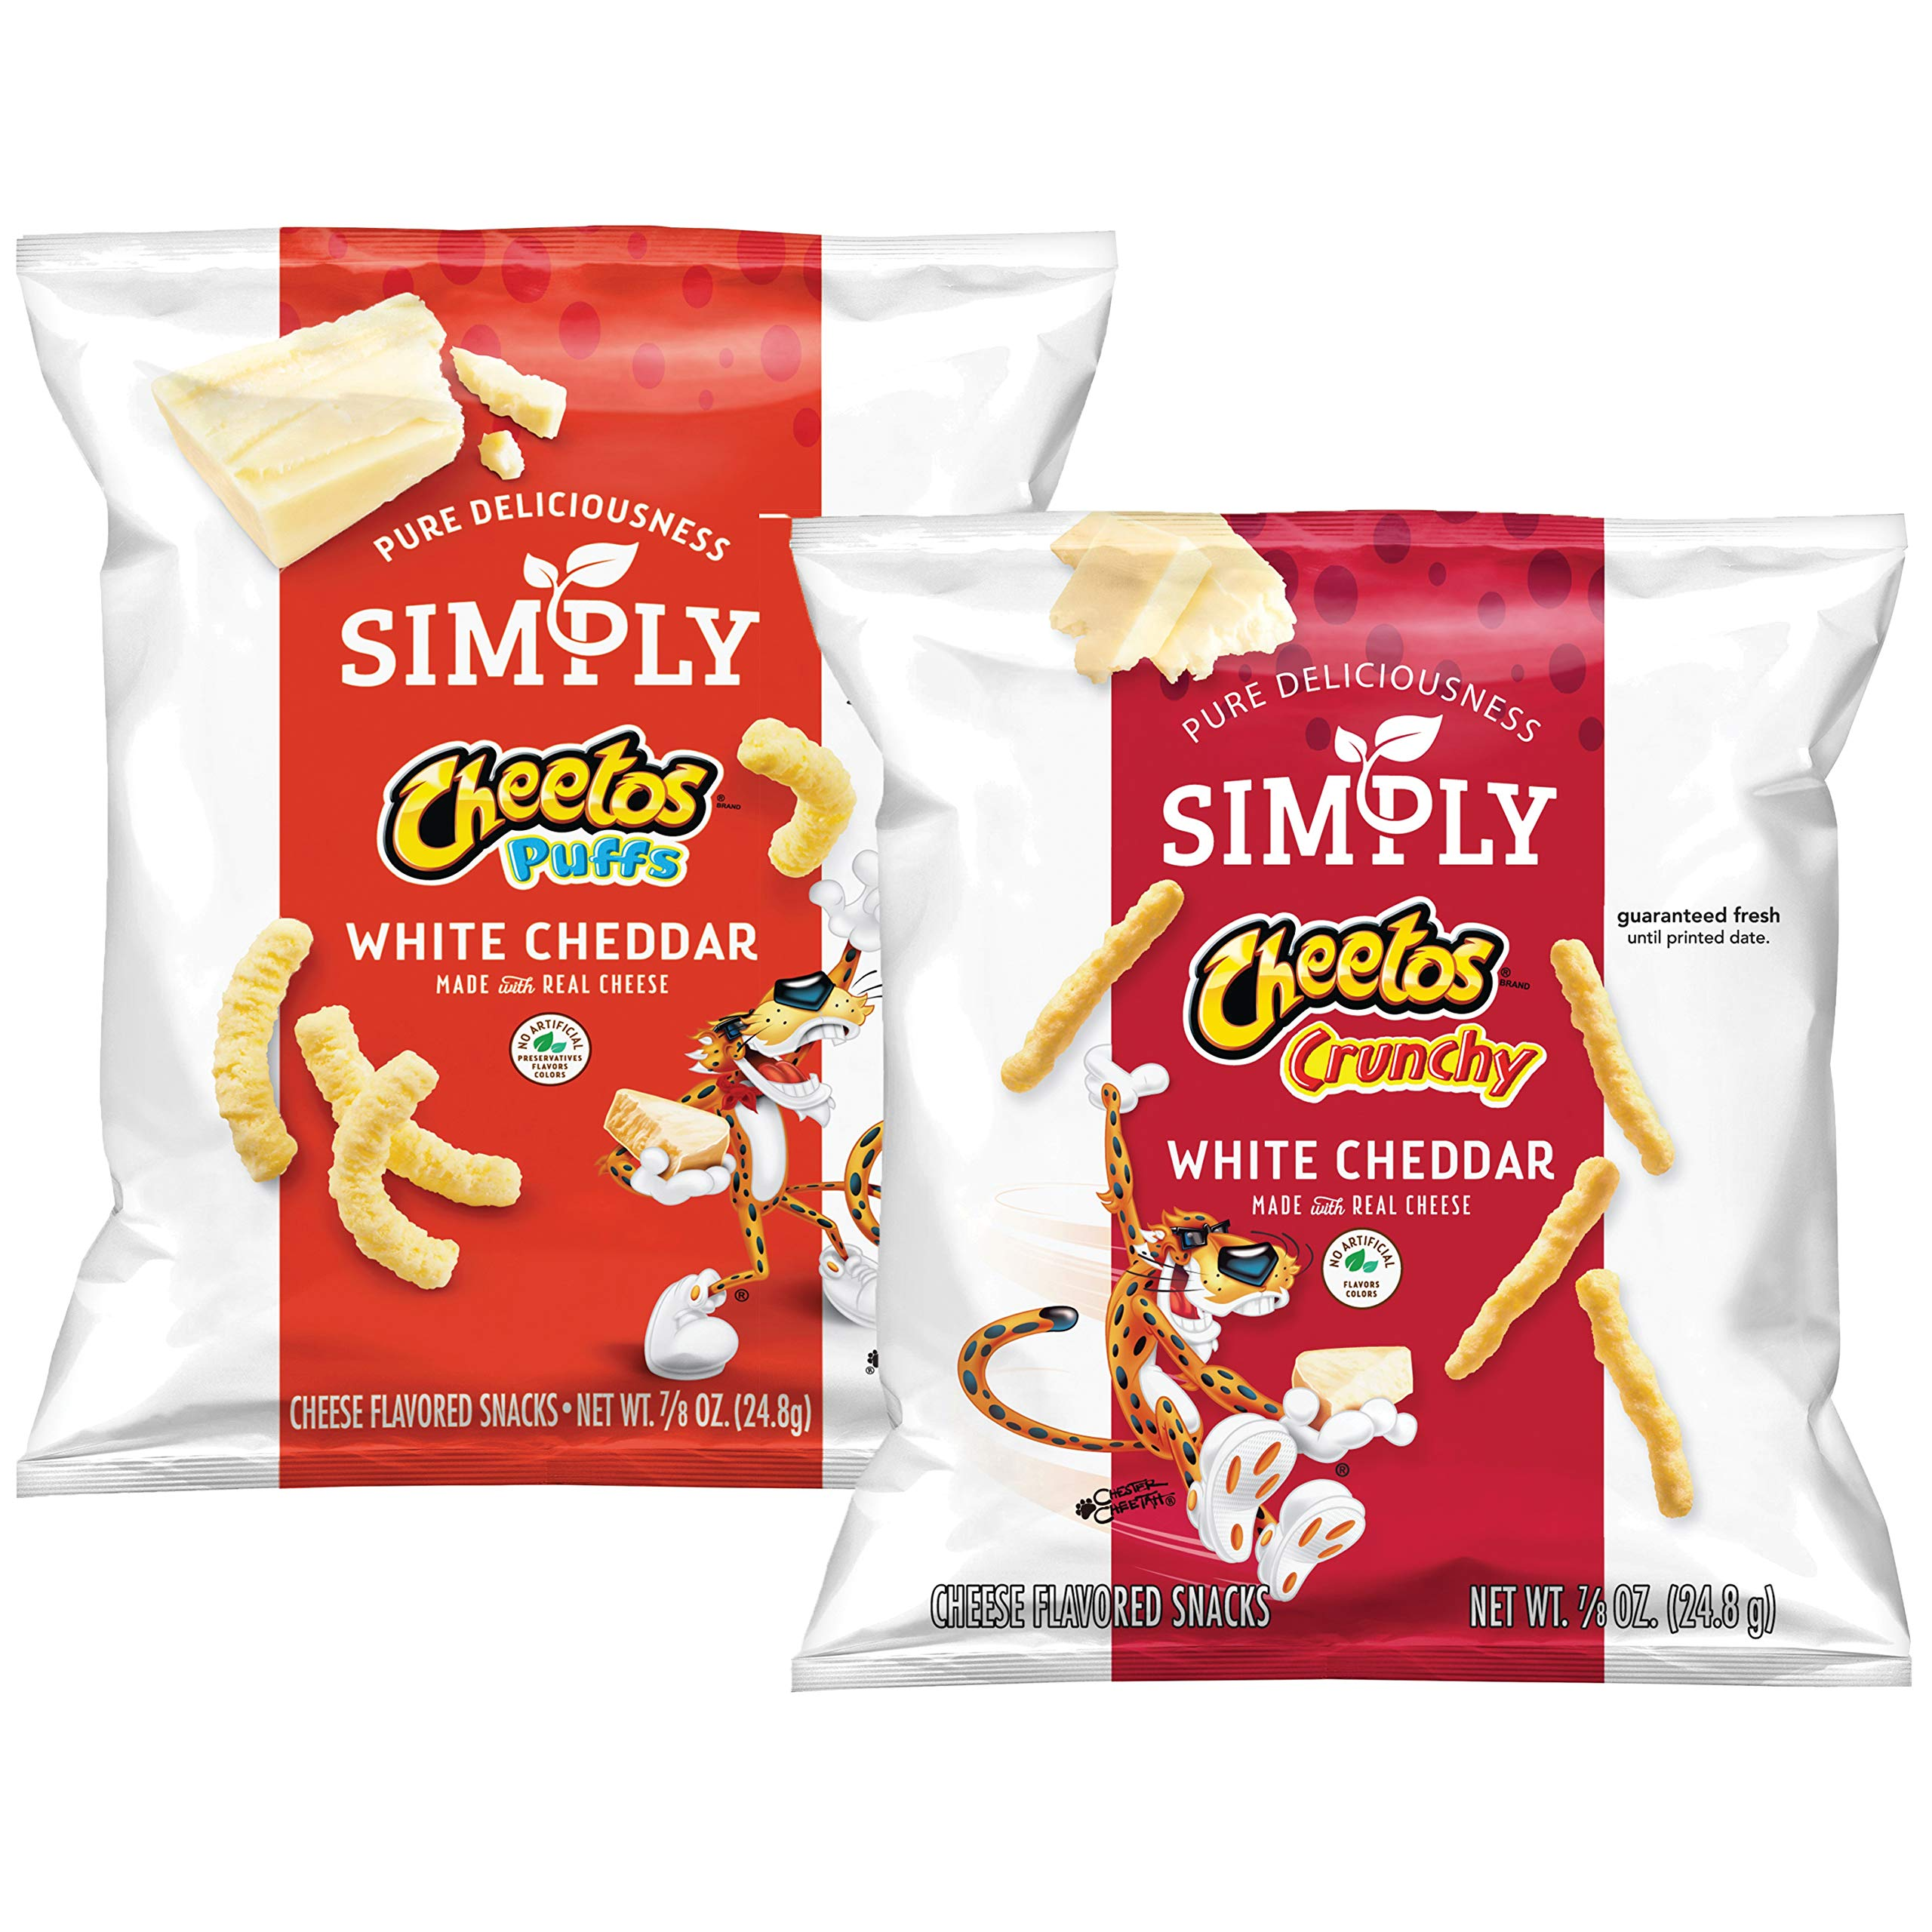 Simply Variety Pack, Cheetos White Cheddar Puffs & Crunchy by Simply